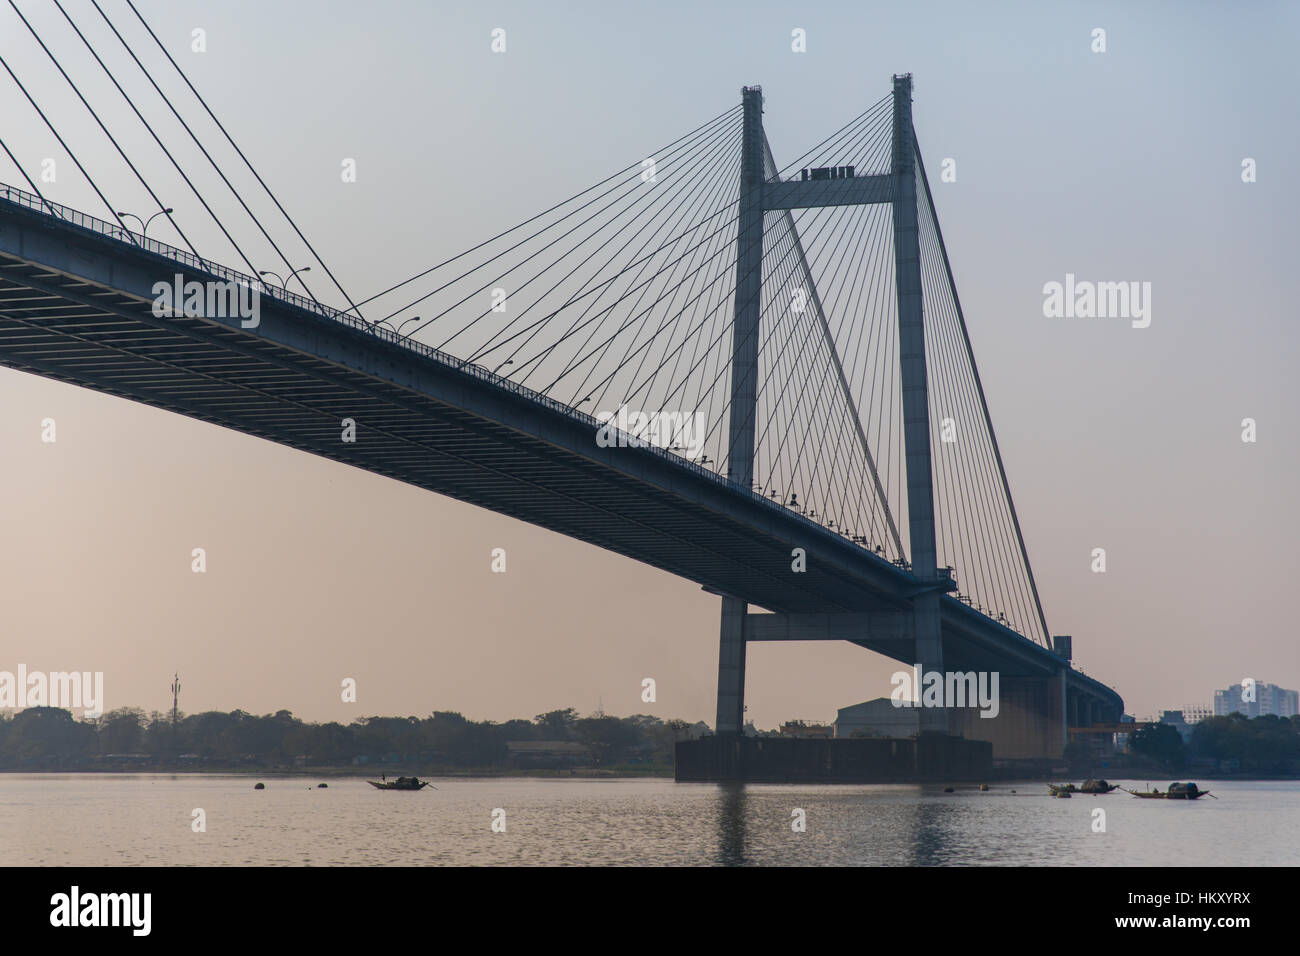 The Hooghly Bridge over the Hooghly River in Kolkata (Calcutta), West Bengal, India. - Stock Image